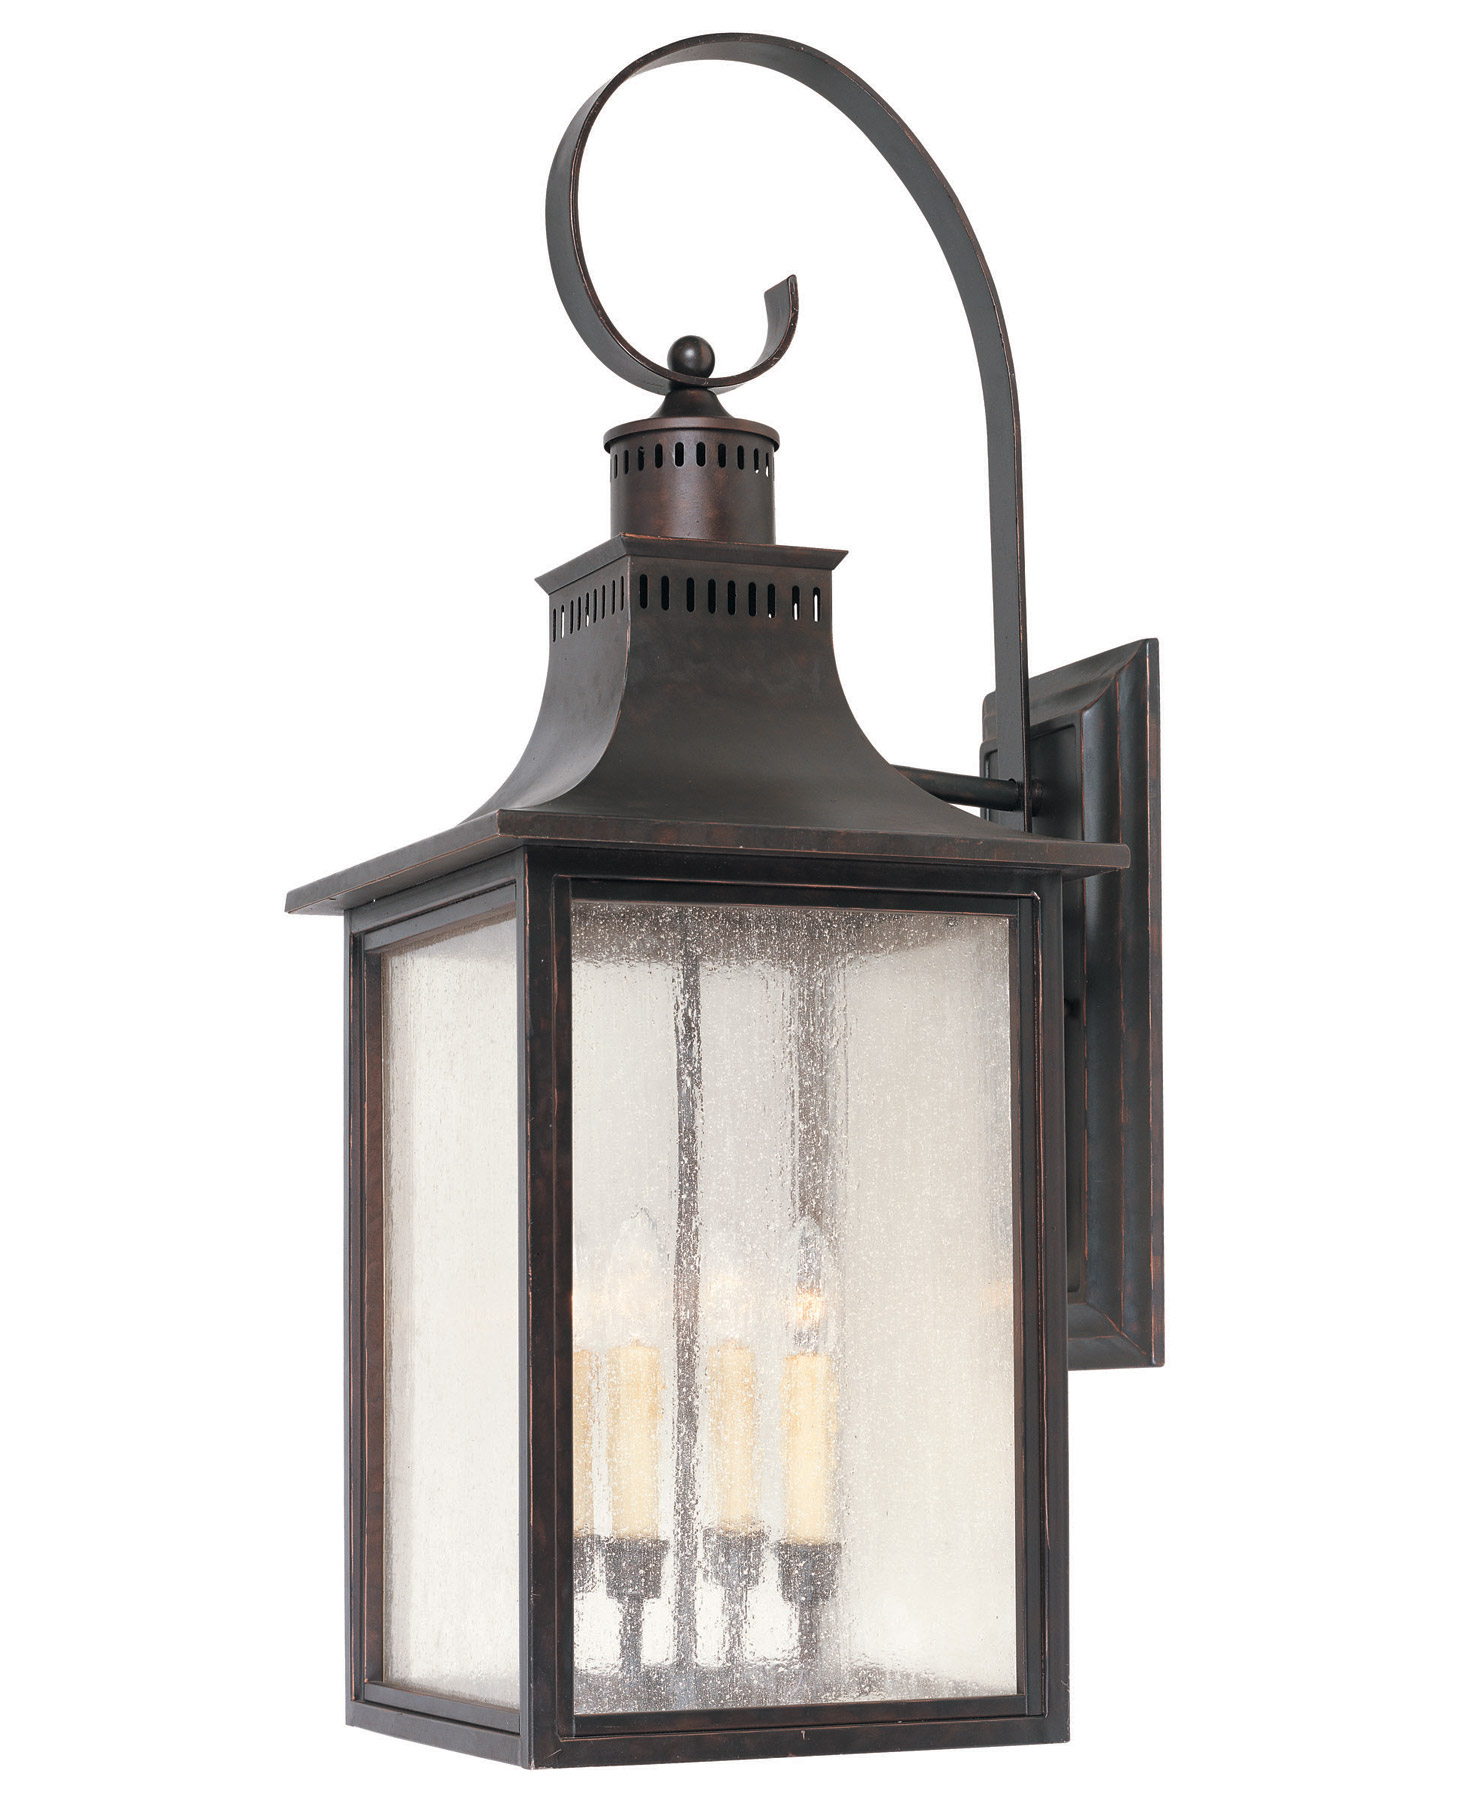 Savoy house 5 257 13 monte grande outdoor wall mount lantern for Outdoor landscape lighting fixtures